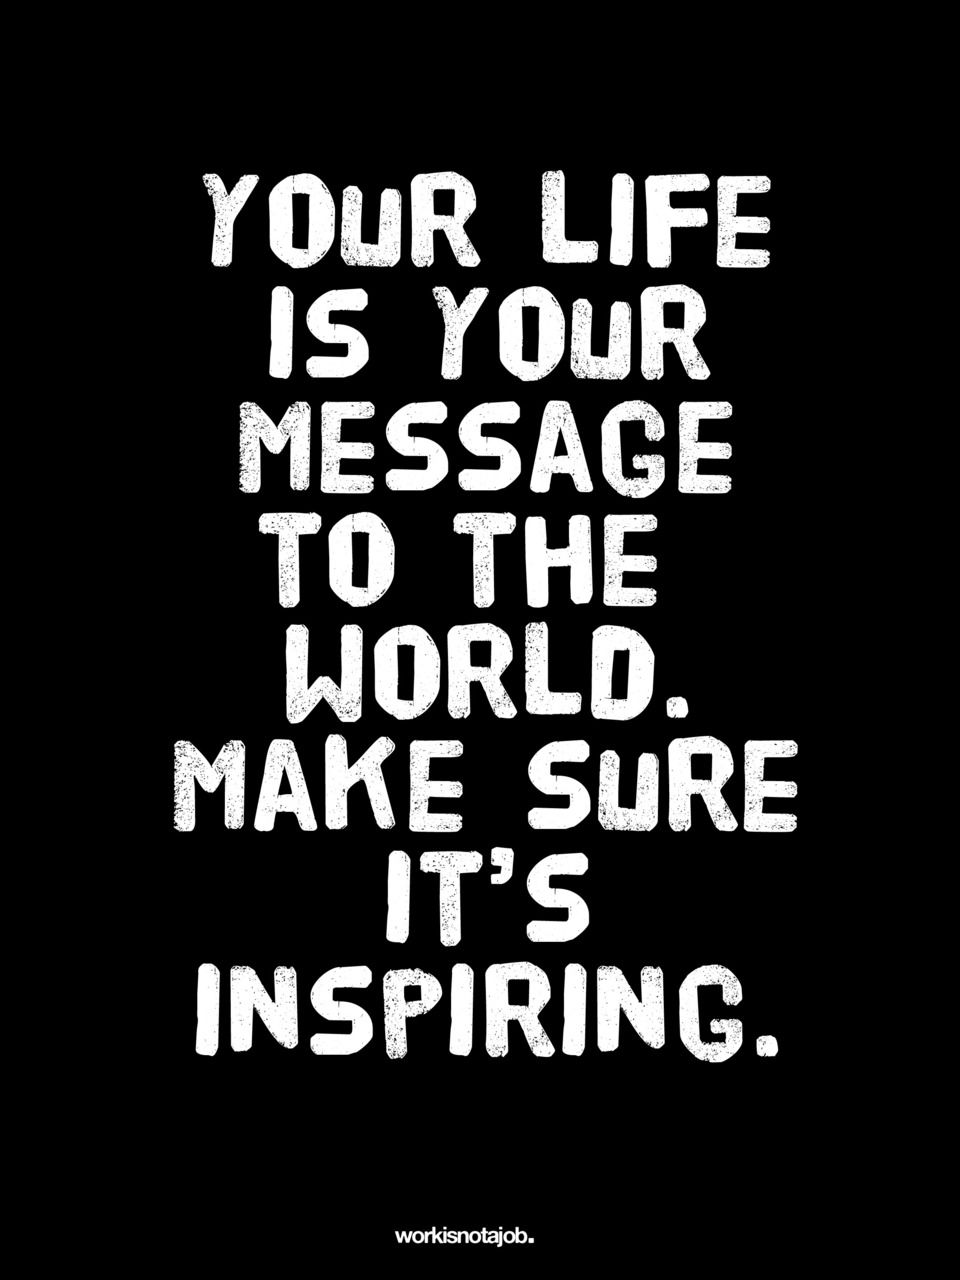 Quotes About Inspiring Others This Makes Me Rethink My Life As It Is Today  Words Thoughts